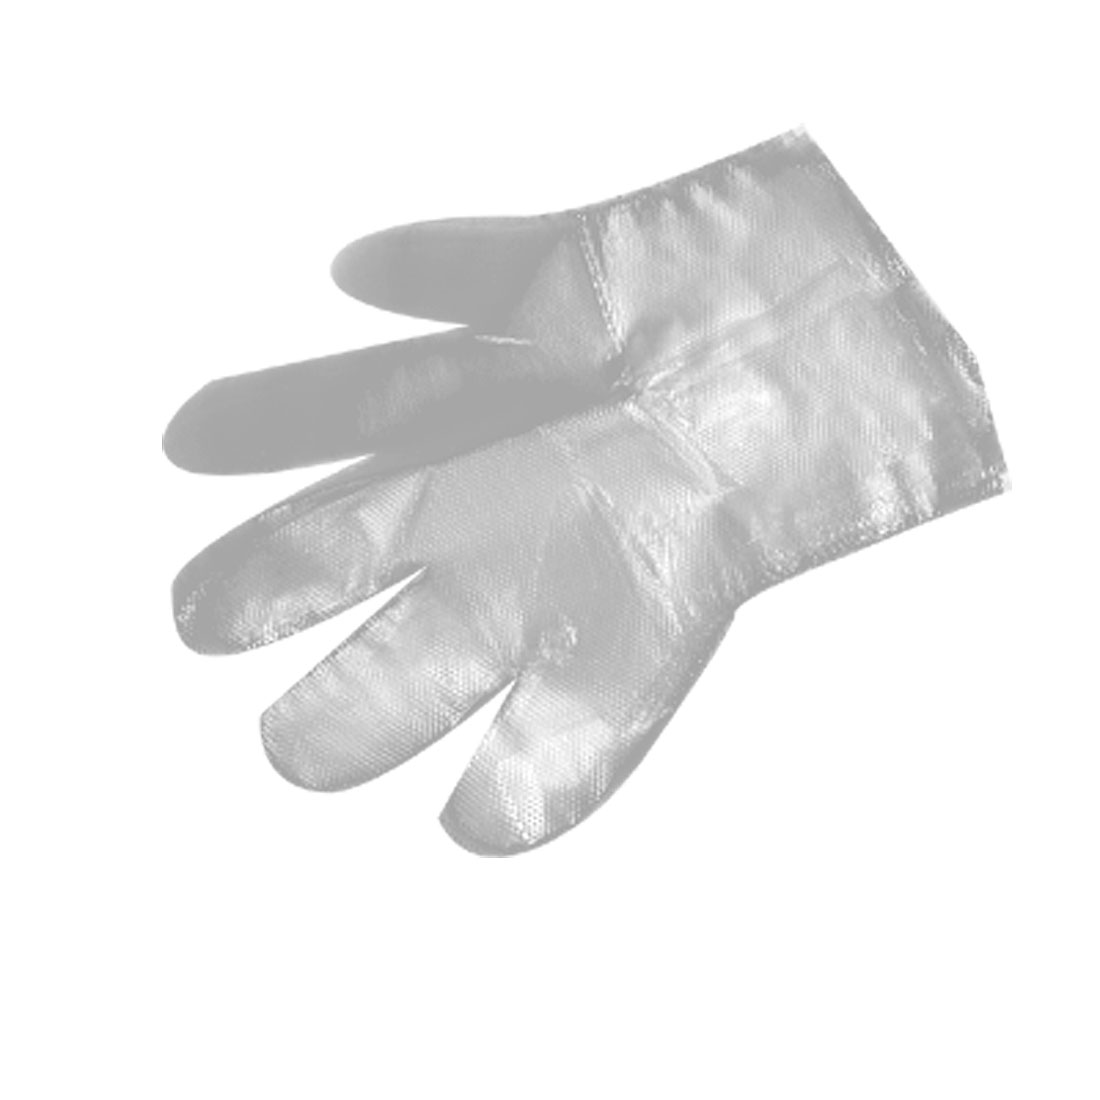 25 Pairs Food Service Clear Plastic Disposable Gloves